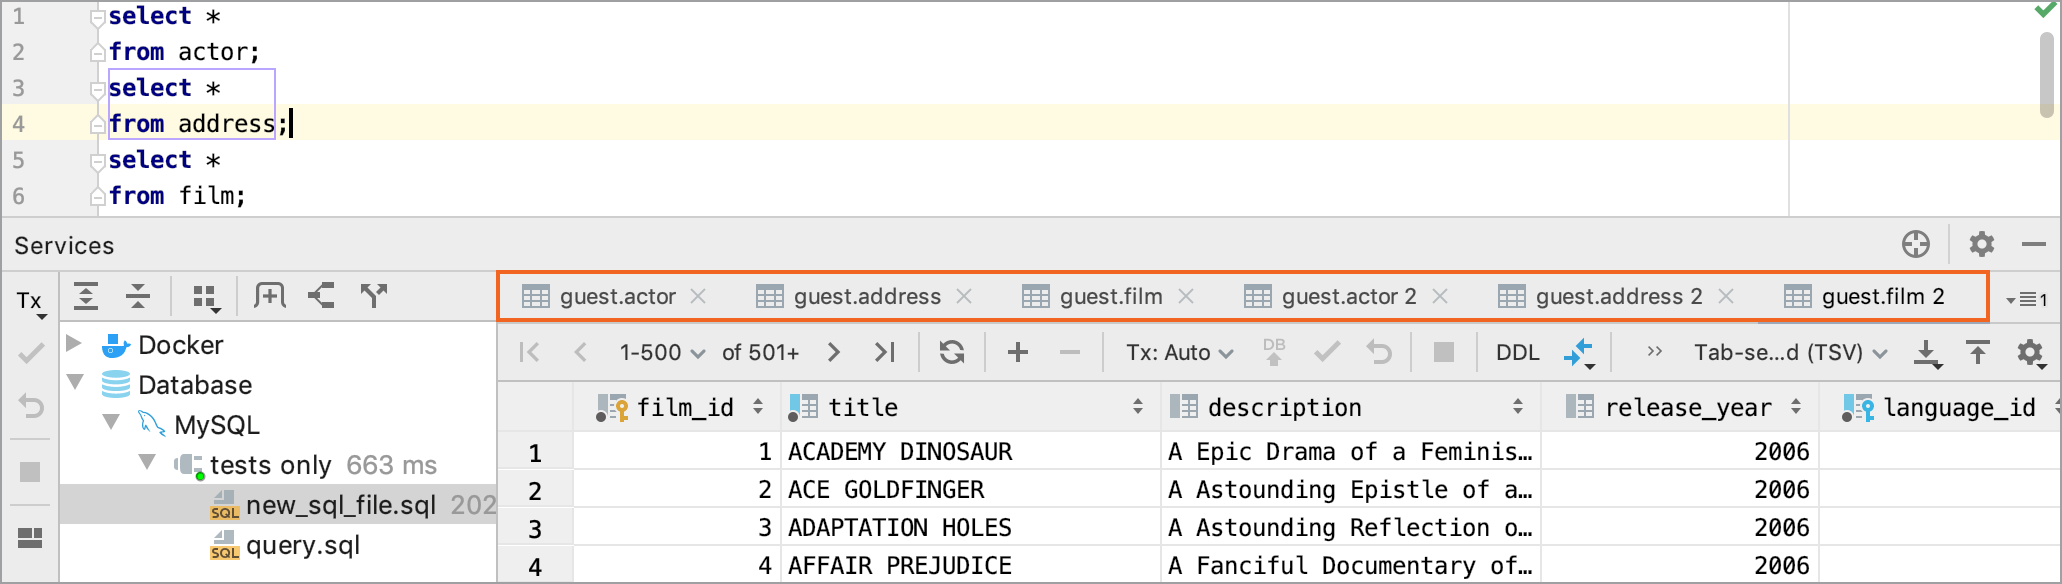 Show results on individual tabs